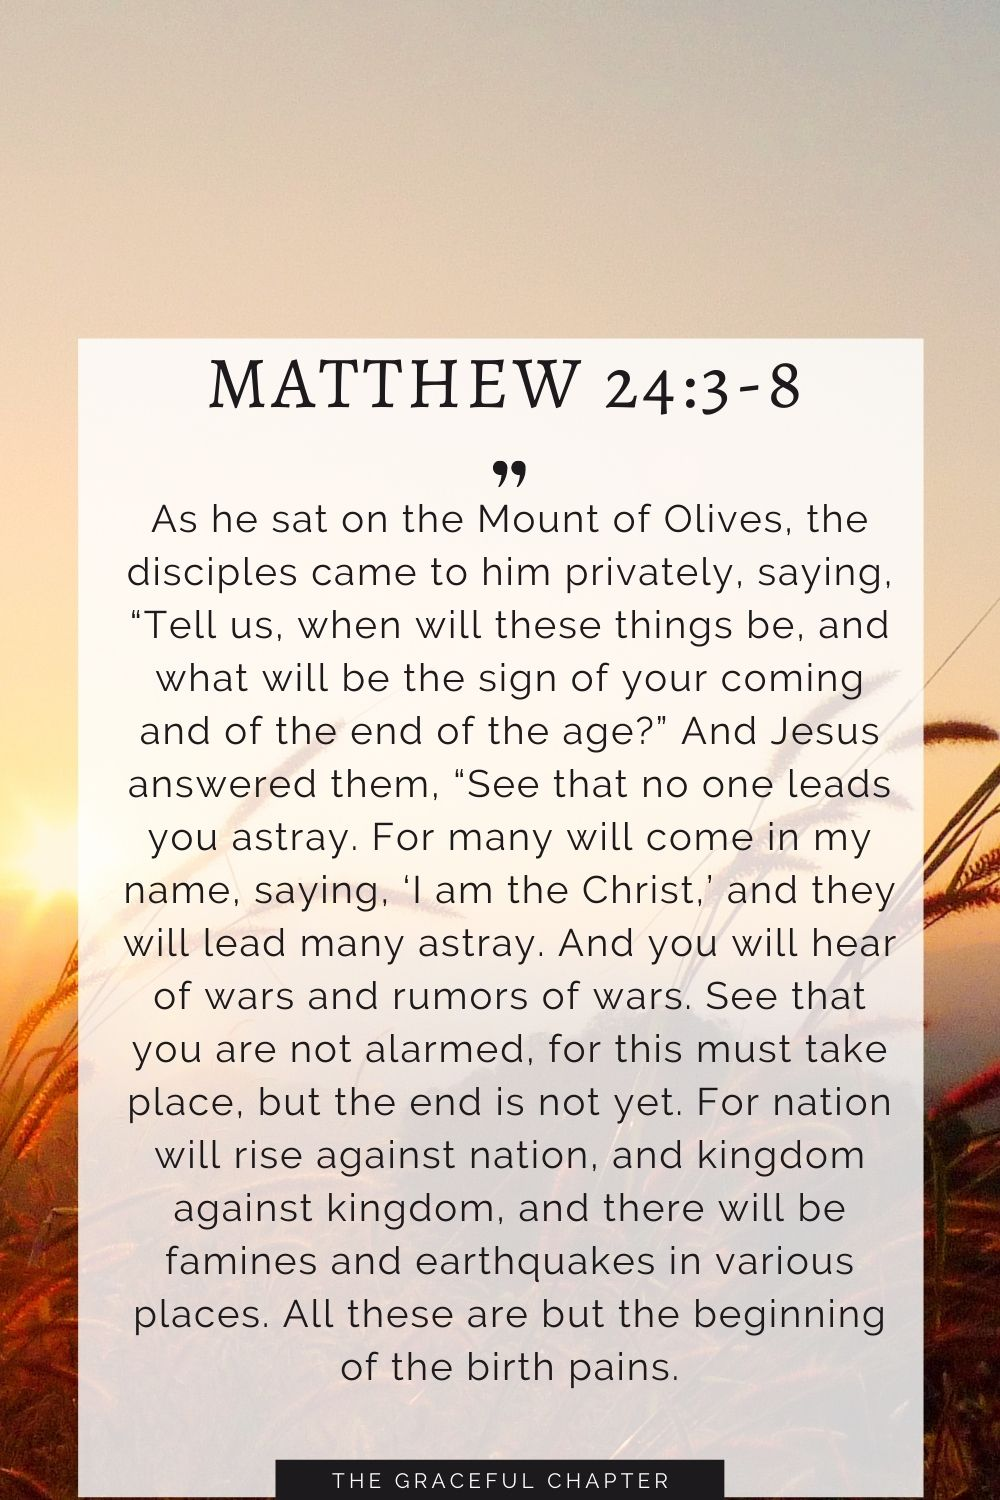 """As he sat on the Mount of Olives, the disciples came to him privately, saying, """"Tell us, when will these things be, and what will be the sign of your coming and of the end of the age?""""And Jesus answered them, """"See that no one leads you astray. For many will come in my name, saying, 'I am the Christ,' and they will lead many astray. And you will hear of wars and rumors of wars. See that you are not alarmed, for this must take place, but the end is not yet.For nation will rise against nation, and kingdom against kingdom, and there will be famines and earthquakes in various places.All these are but the beginning of the birth pains. Matthew 24:3-8"""